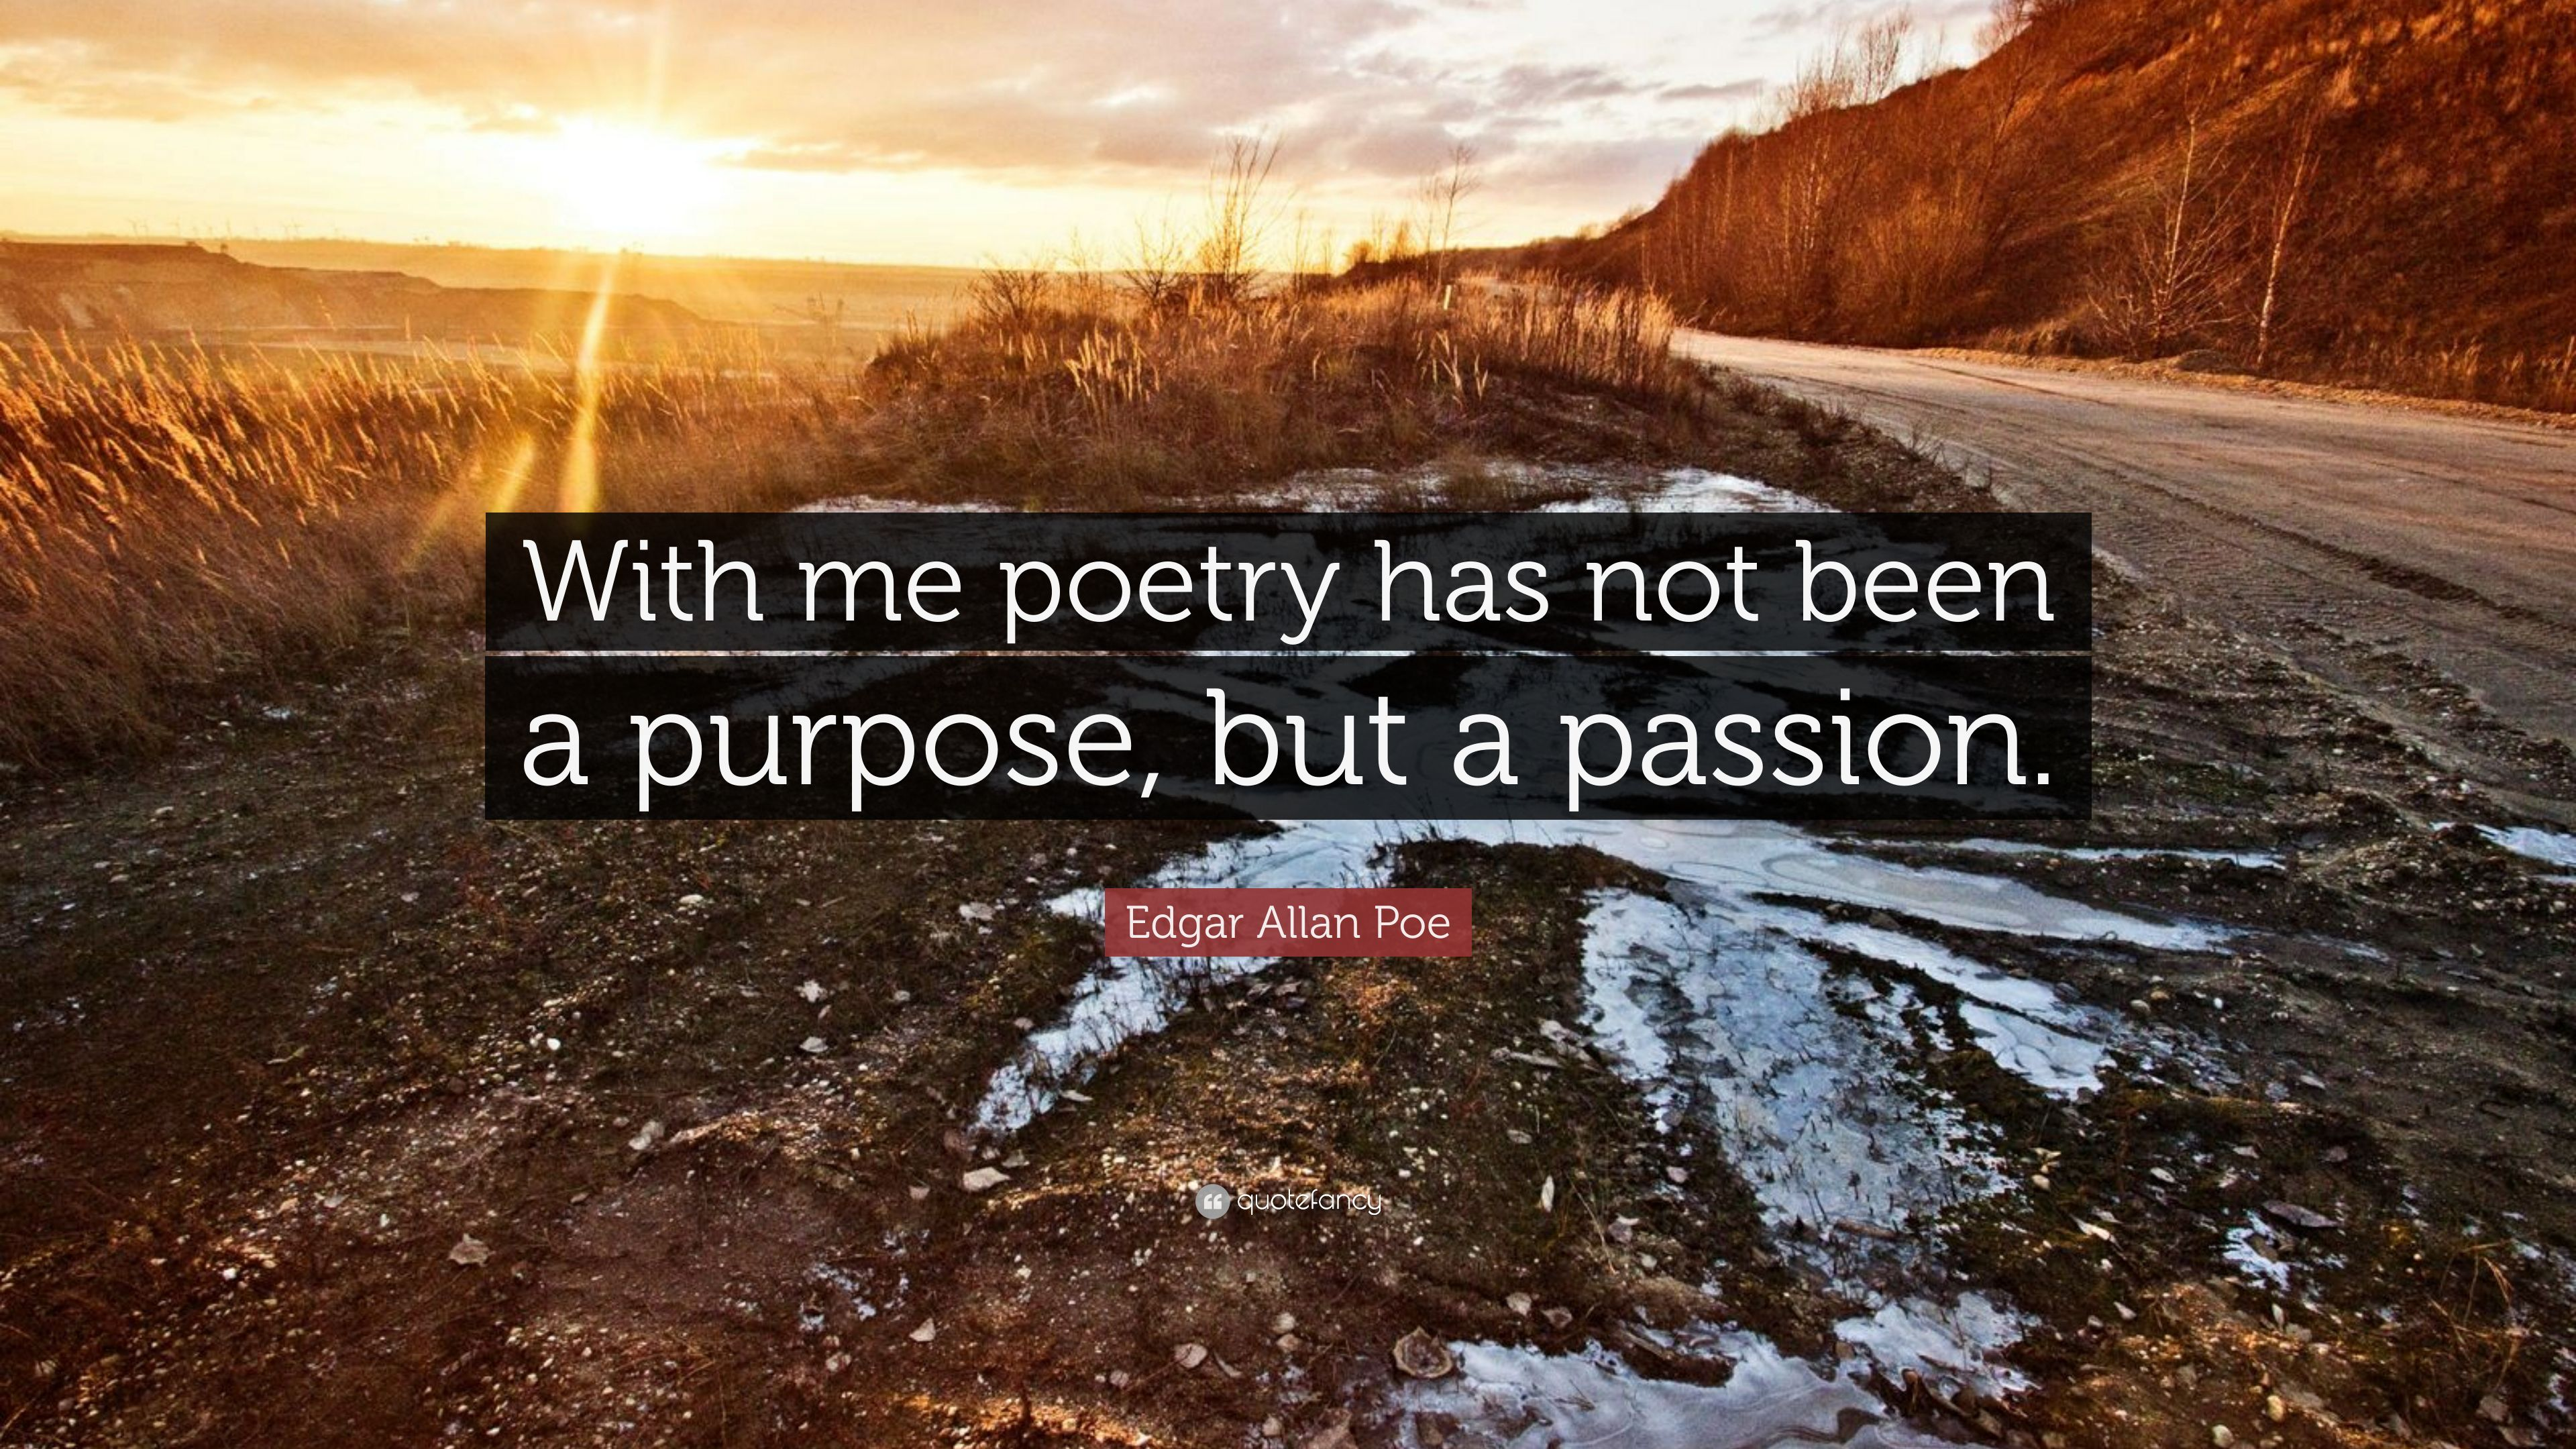 Edgar Allan Poe Love Quotes | Edgar Allan Poe Quote With Me Poetry Has Not Been A Purpose But A